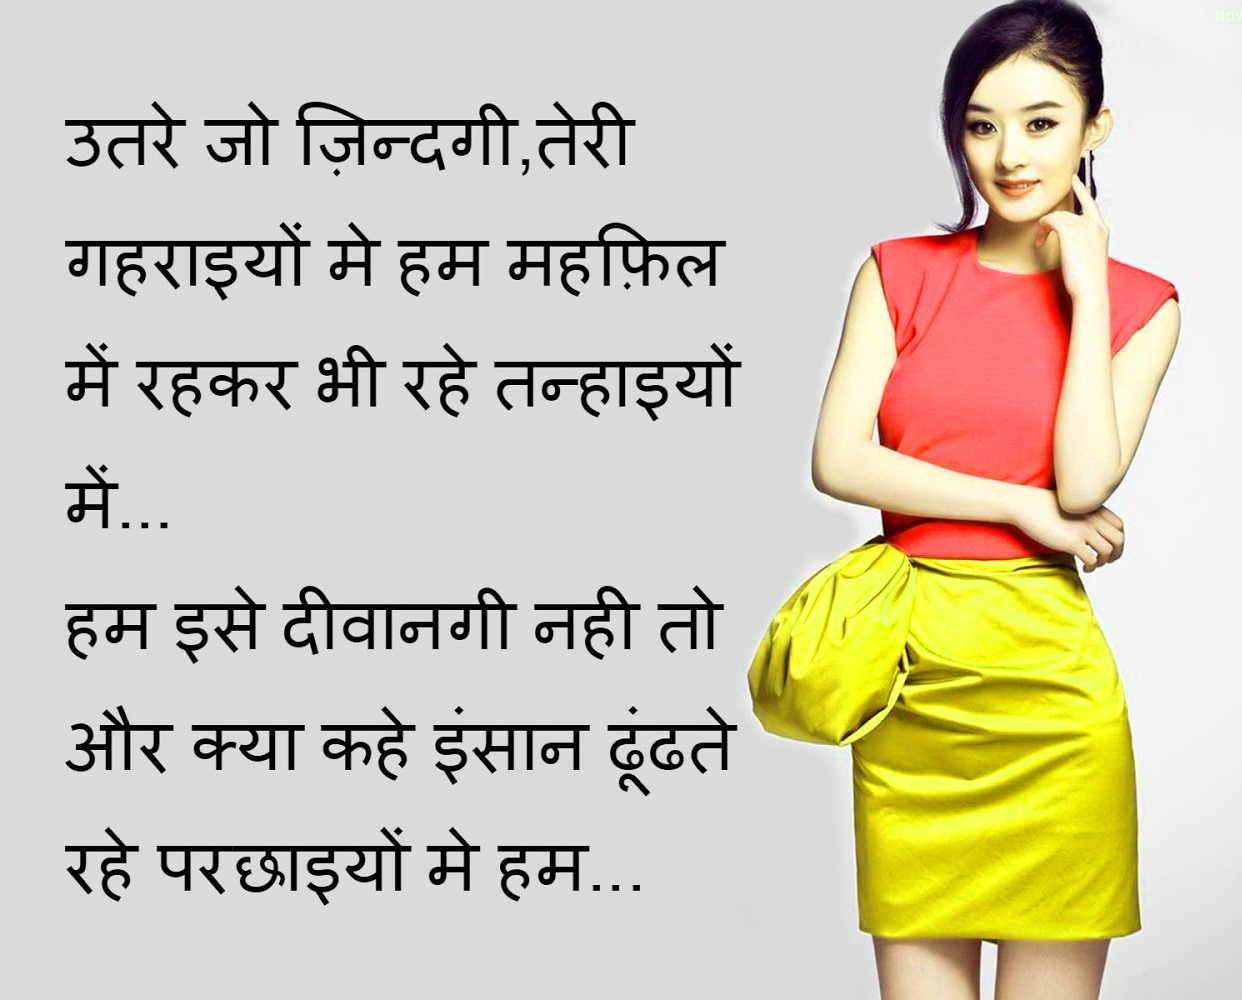 Hindi Jokes Chutkule shayari Images Photo Wallpaper Pics Download